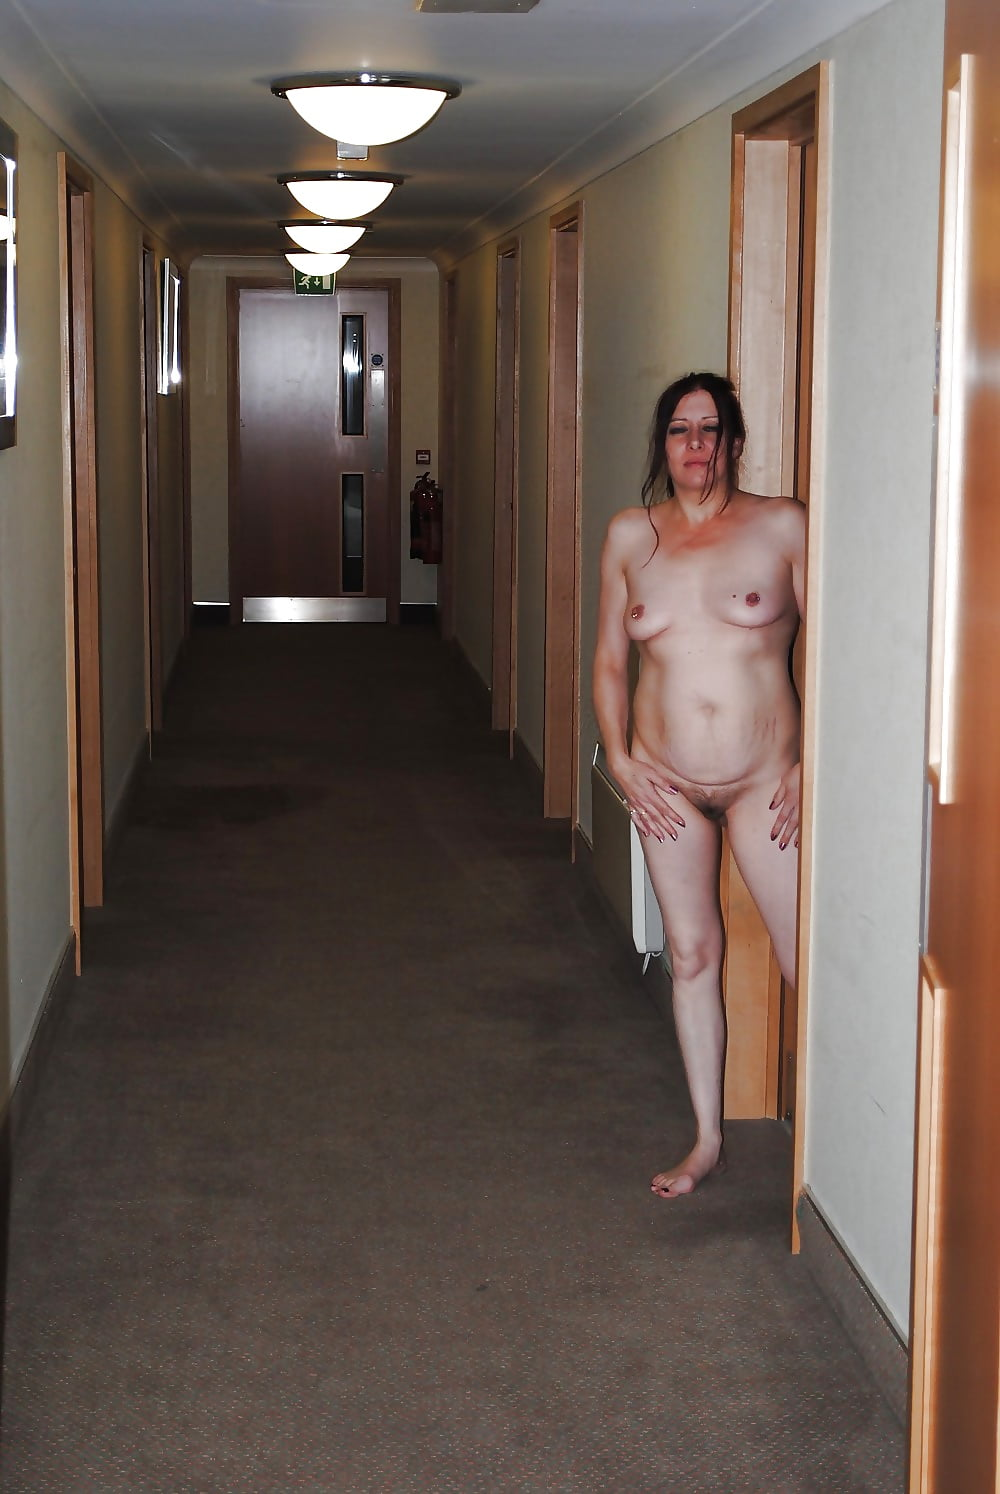 hotel-nude-video-american-girls-nudes